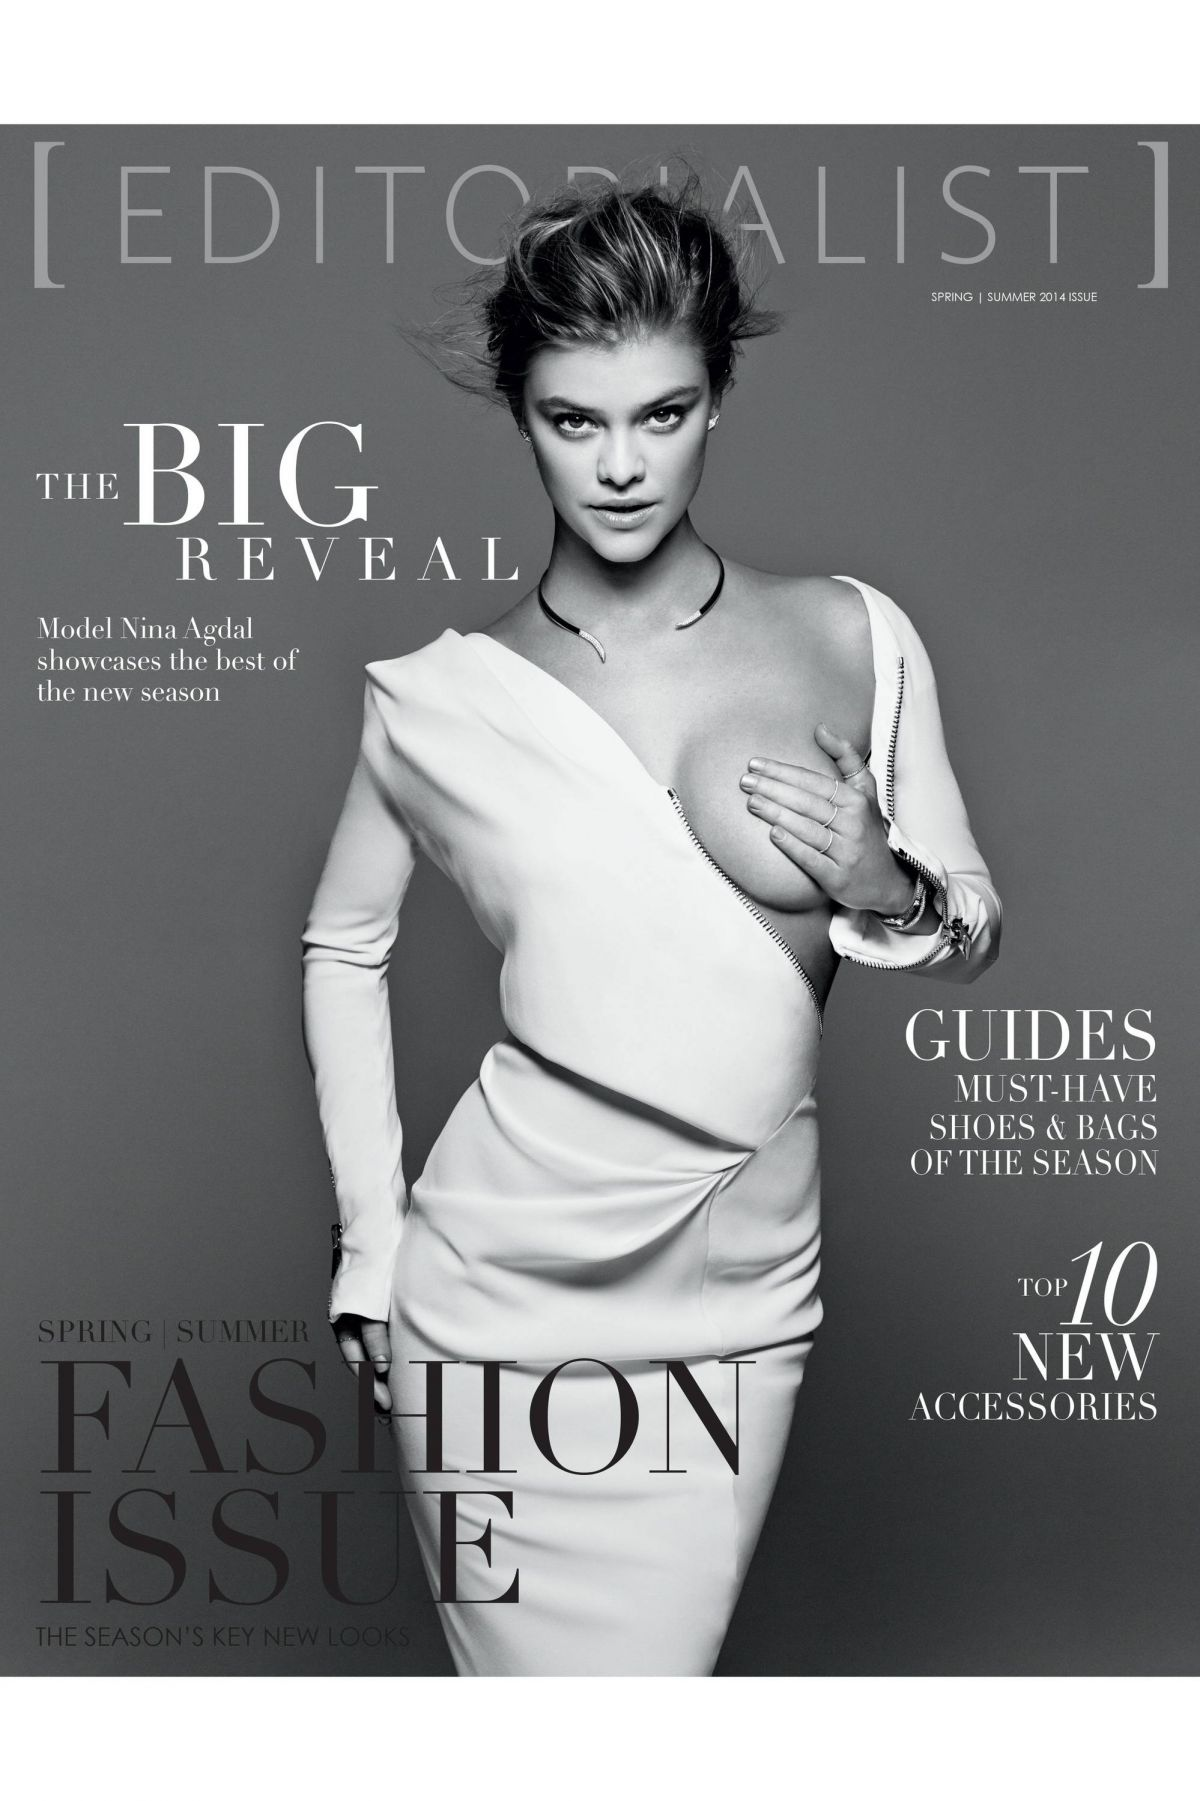 NINA AGDAL in Editorialist : Print Edition, Spring/Summer 2014 Issue